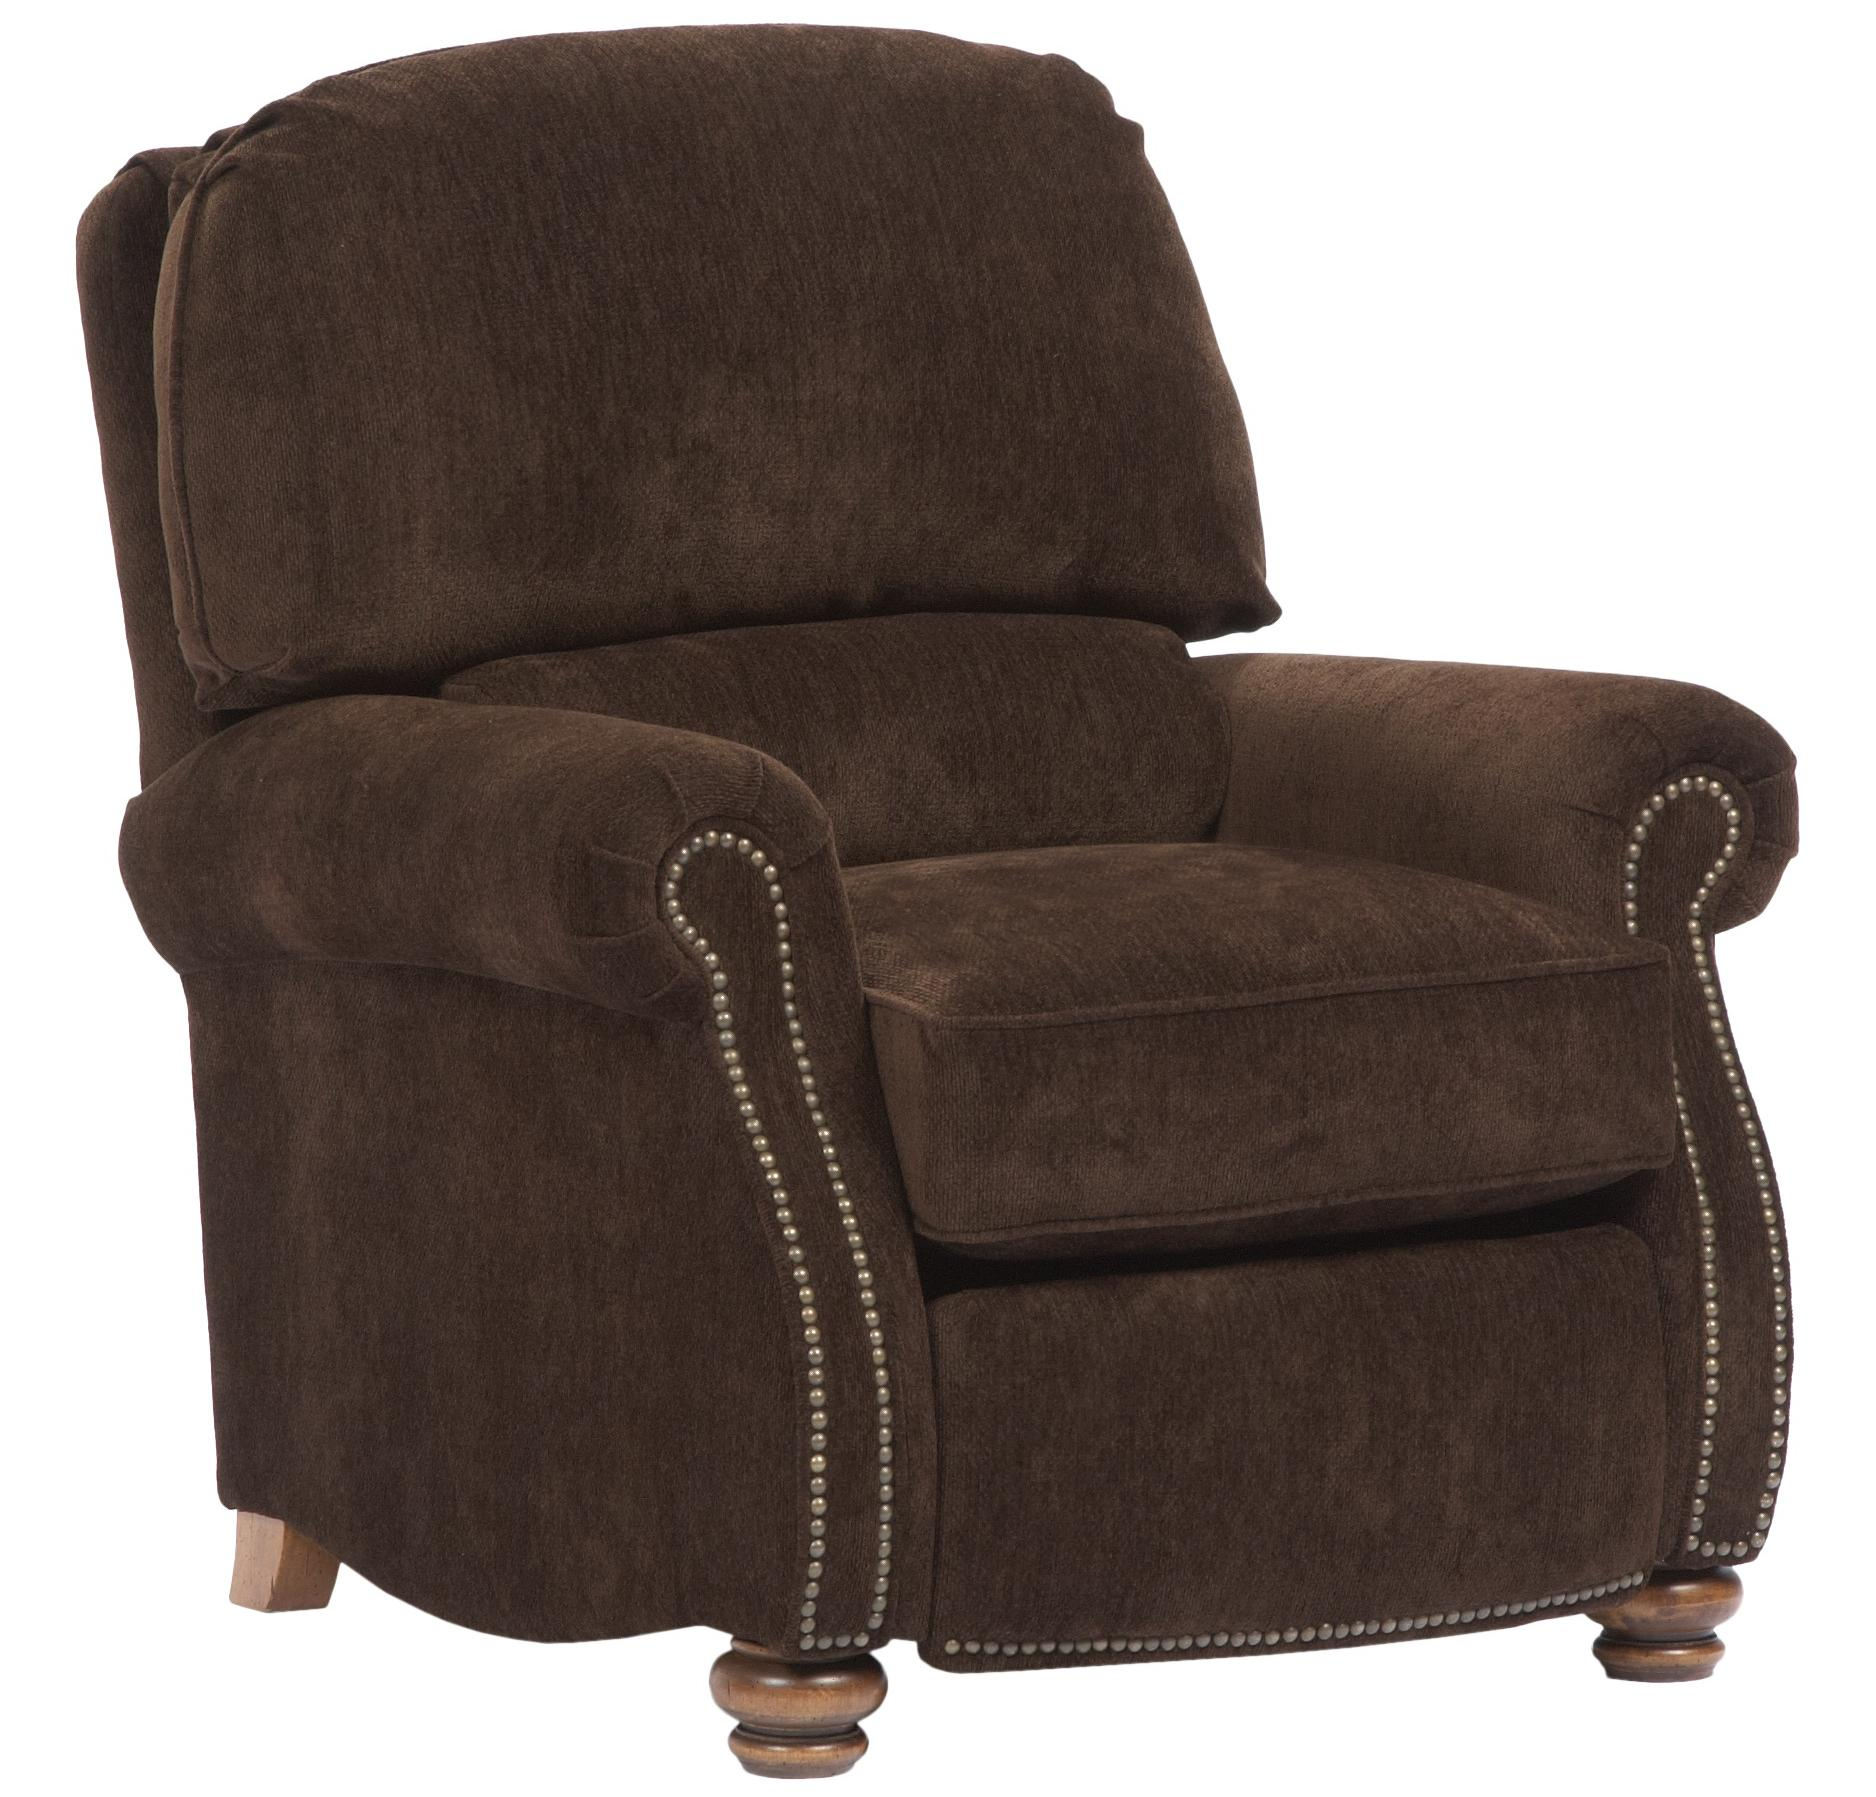 Broyhill Furniture Laramie Recliner - Item Number: 2913